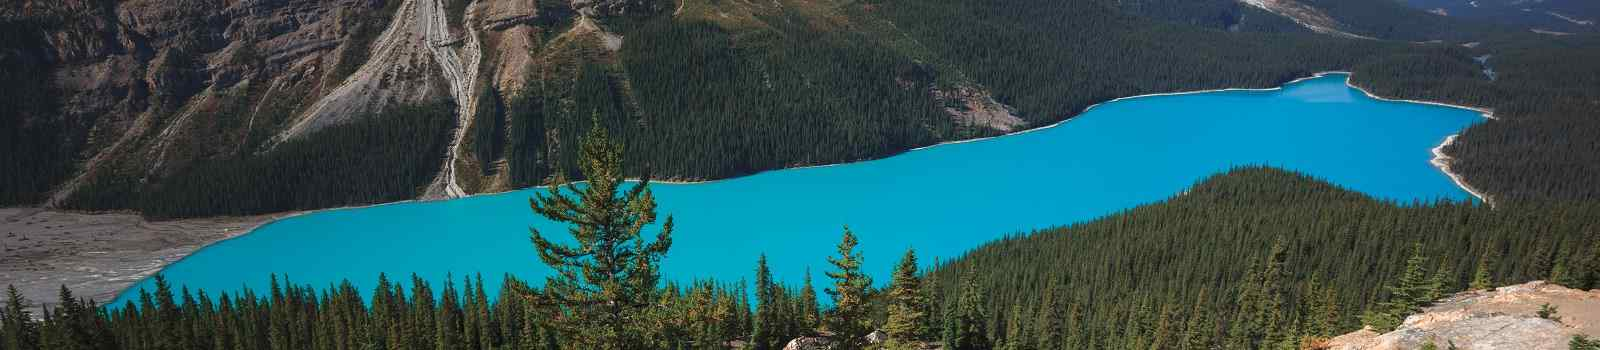 CAD-MT-COUNTRY Peyto Lake in Banff Canada shutterstock 538033426